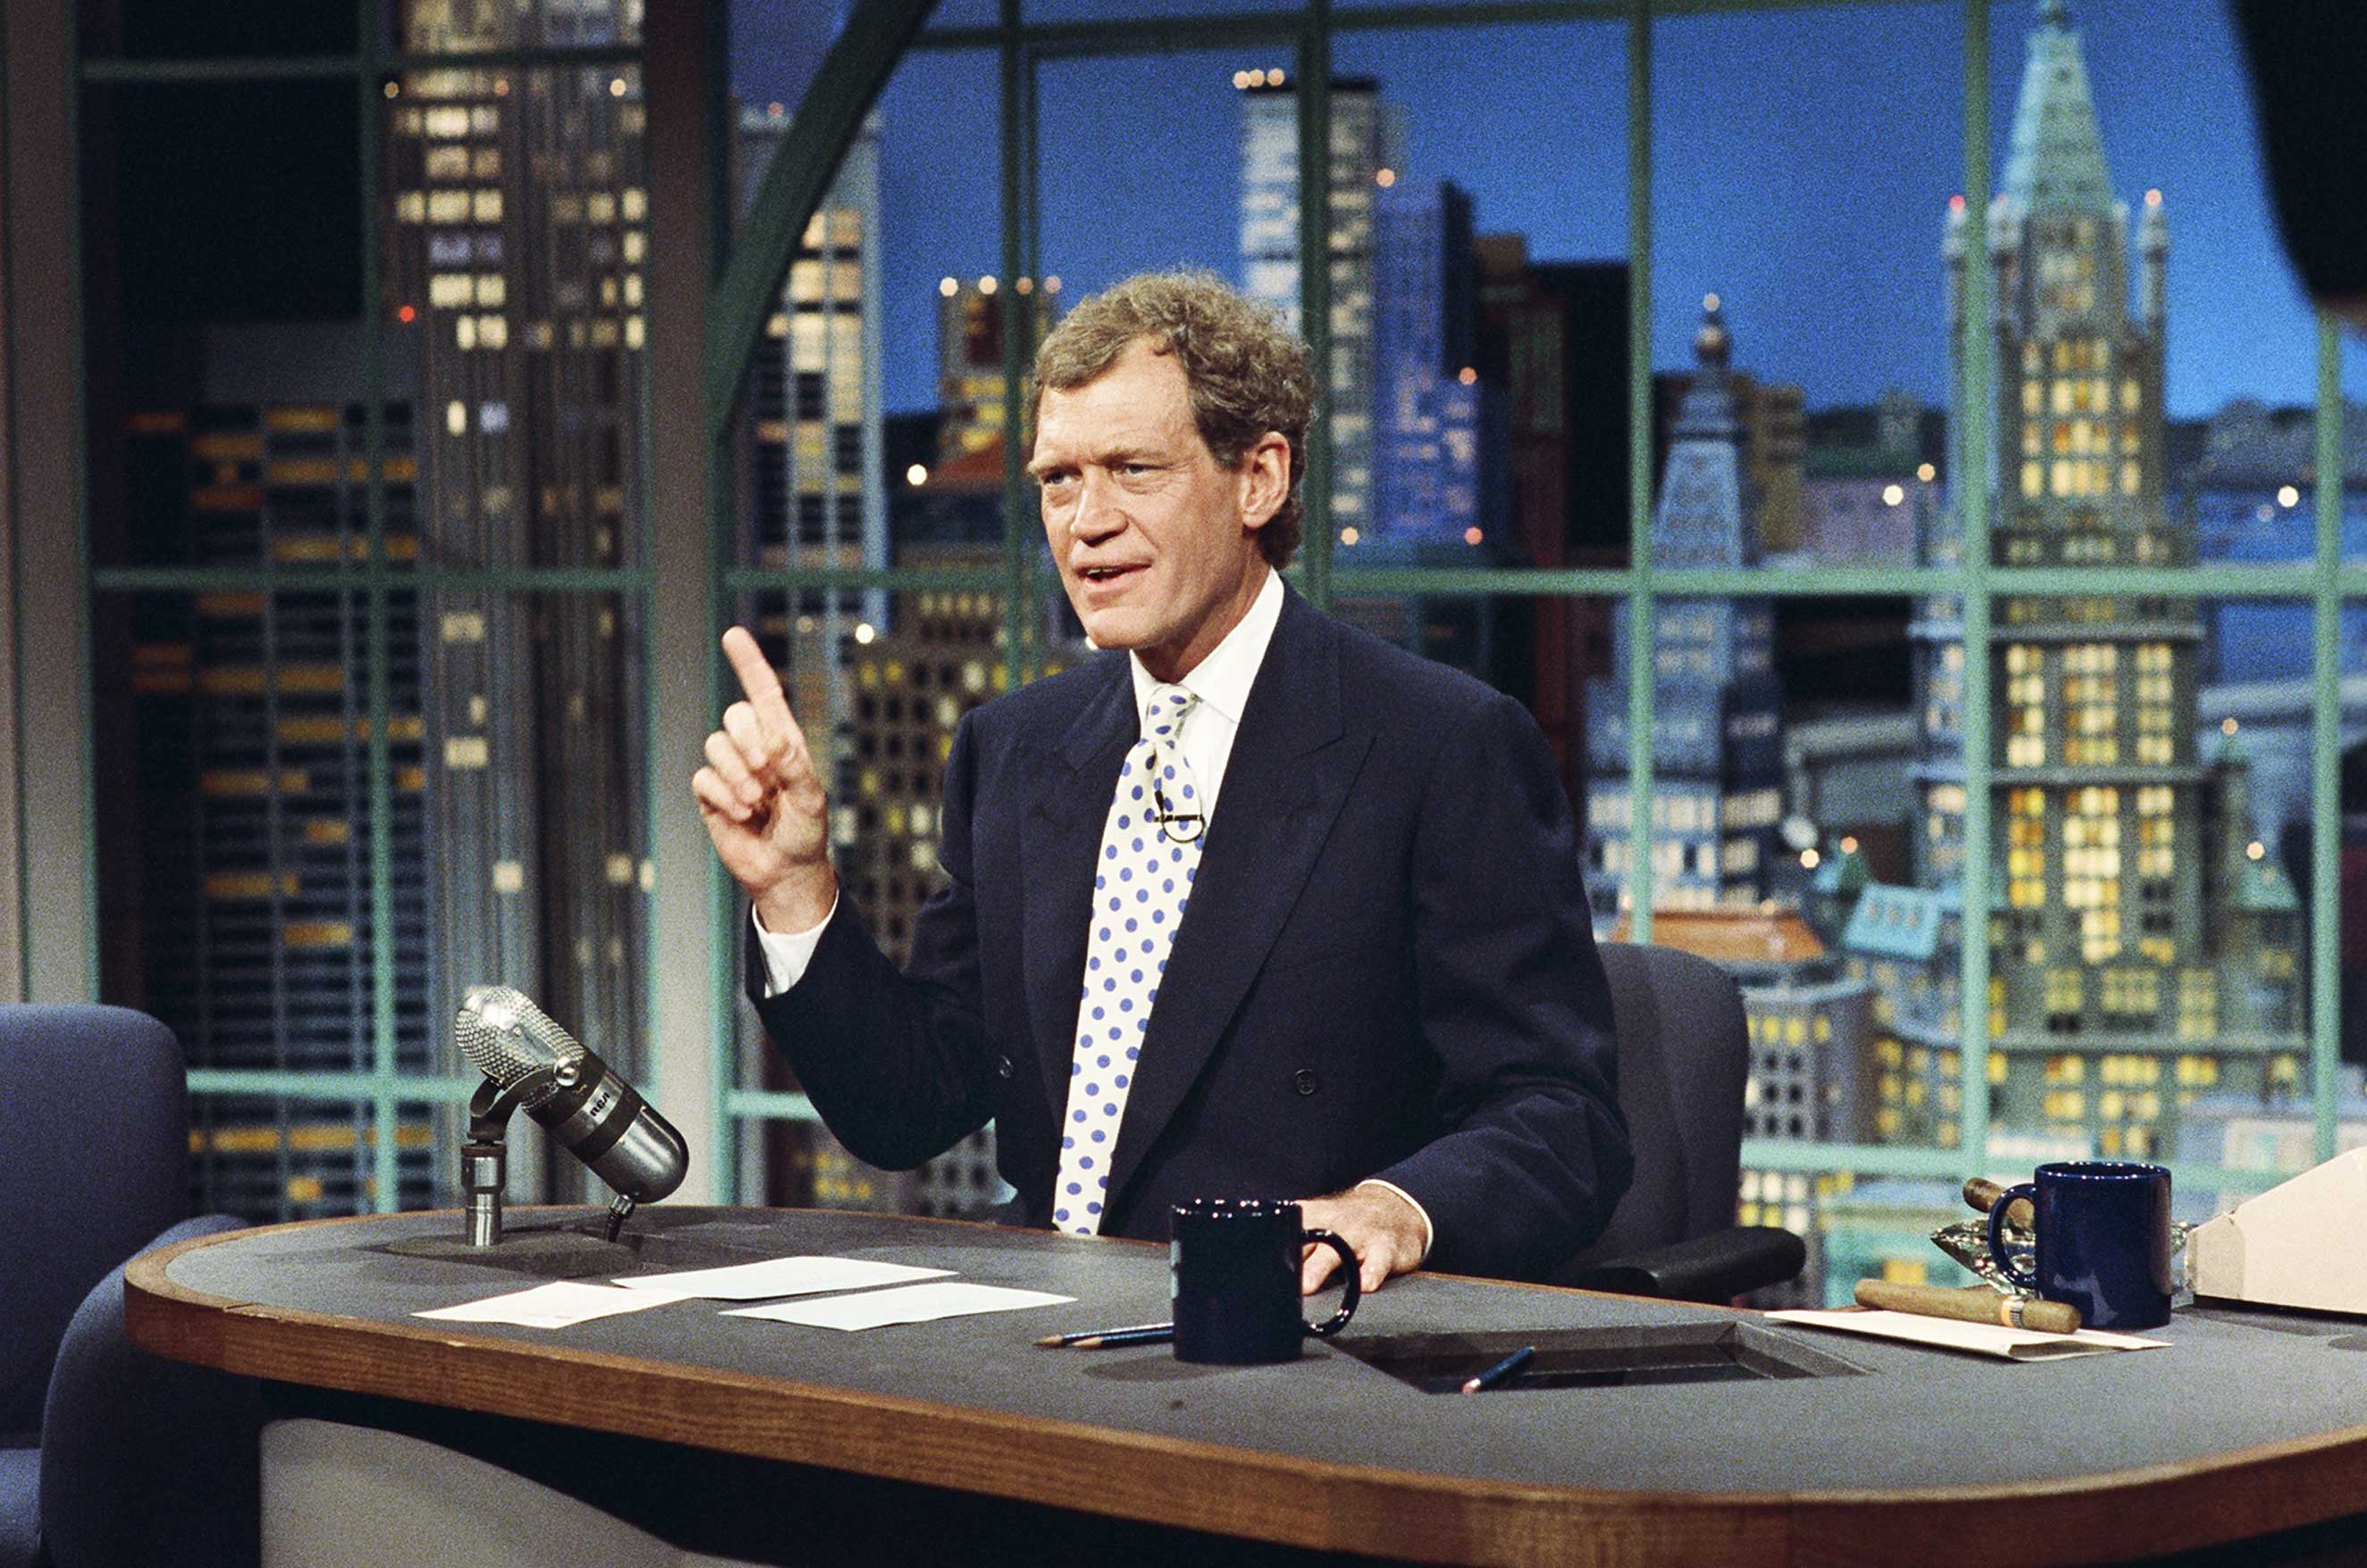 Host David Letterman on Late Night with David Letterman, June 25, 1993.